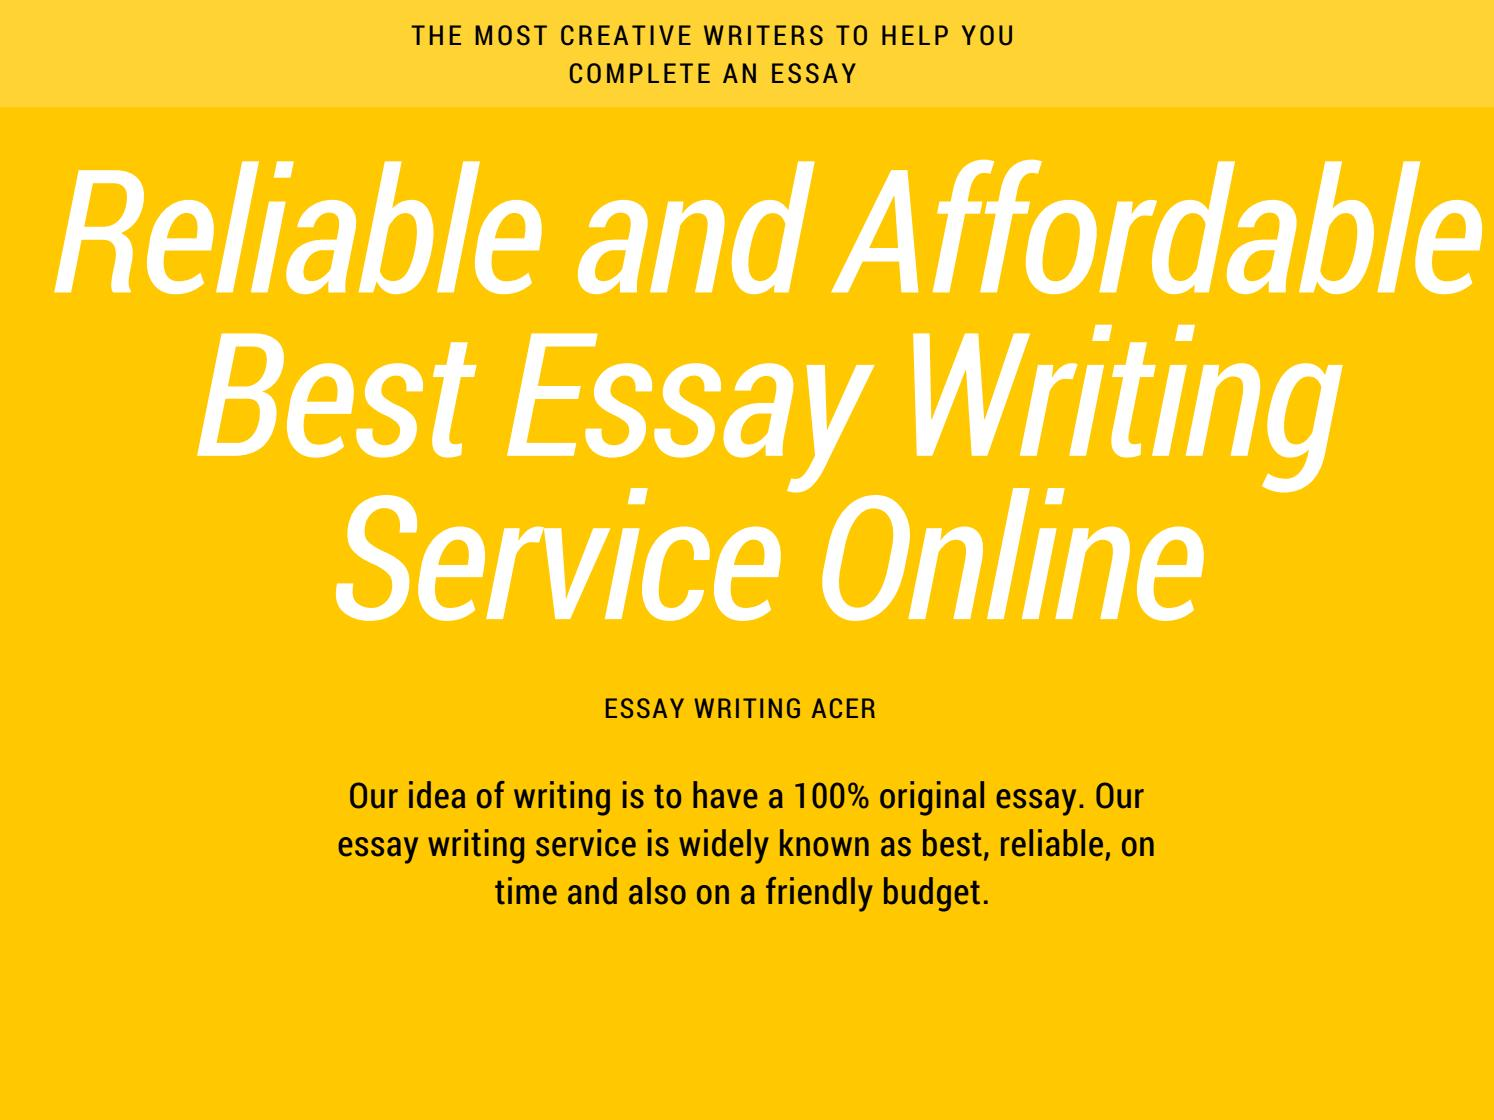 Top essay writing service ever used